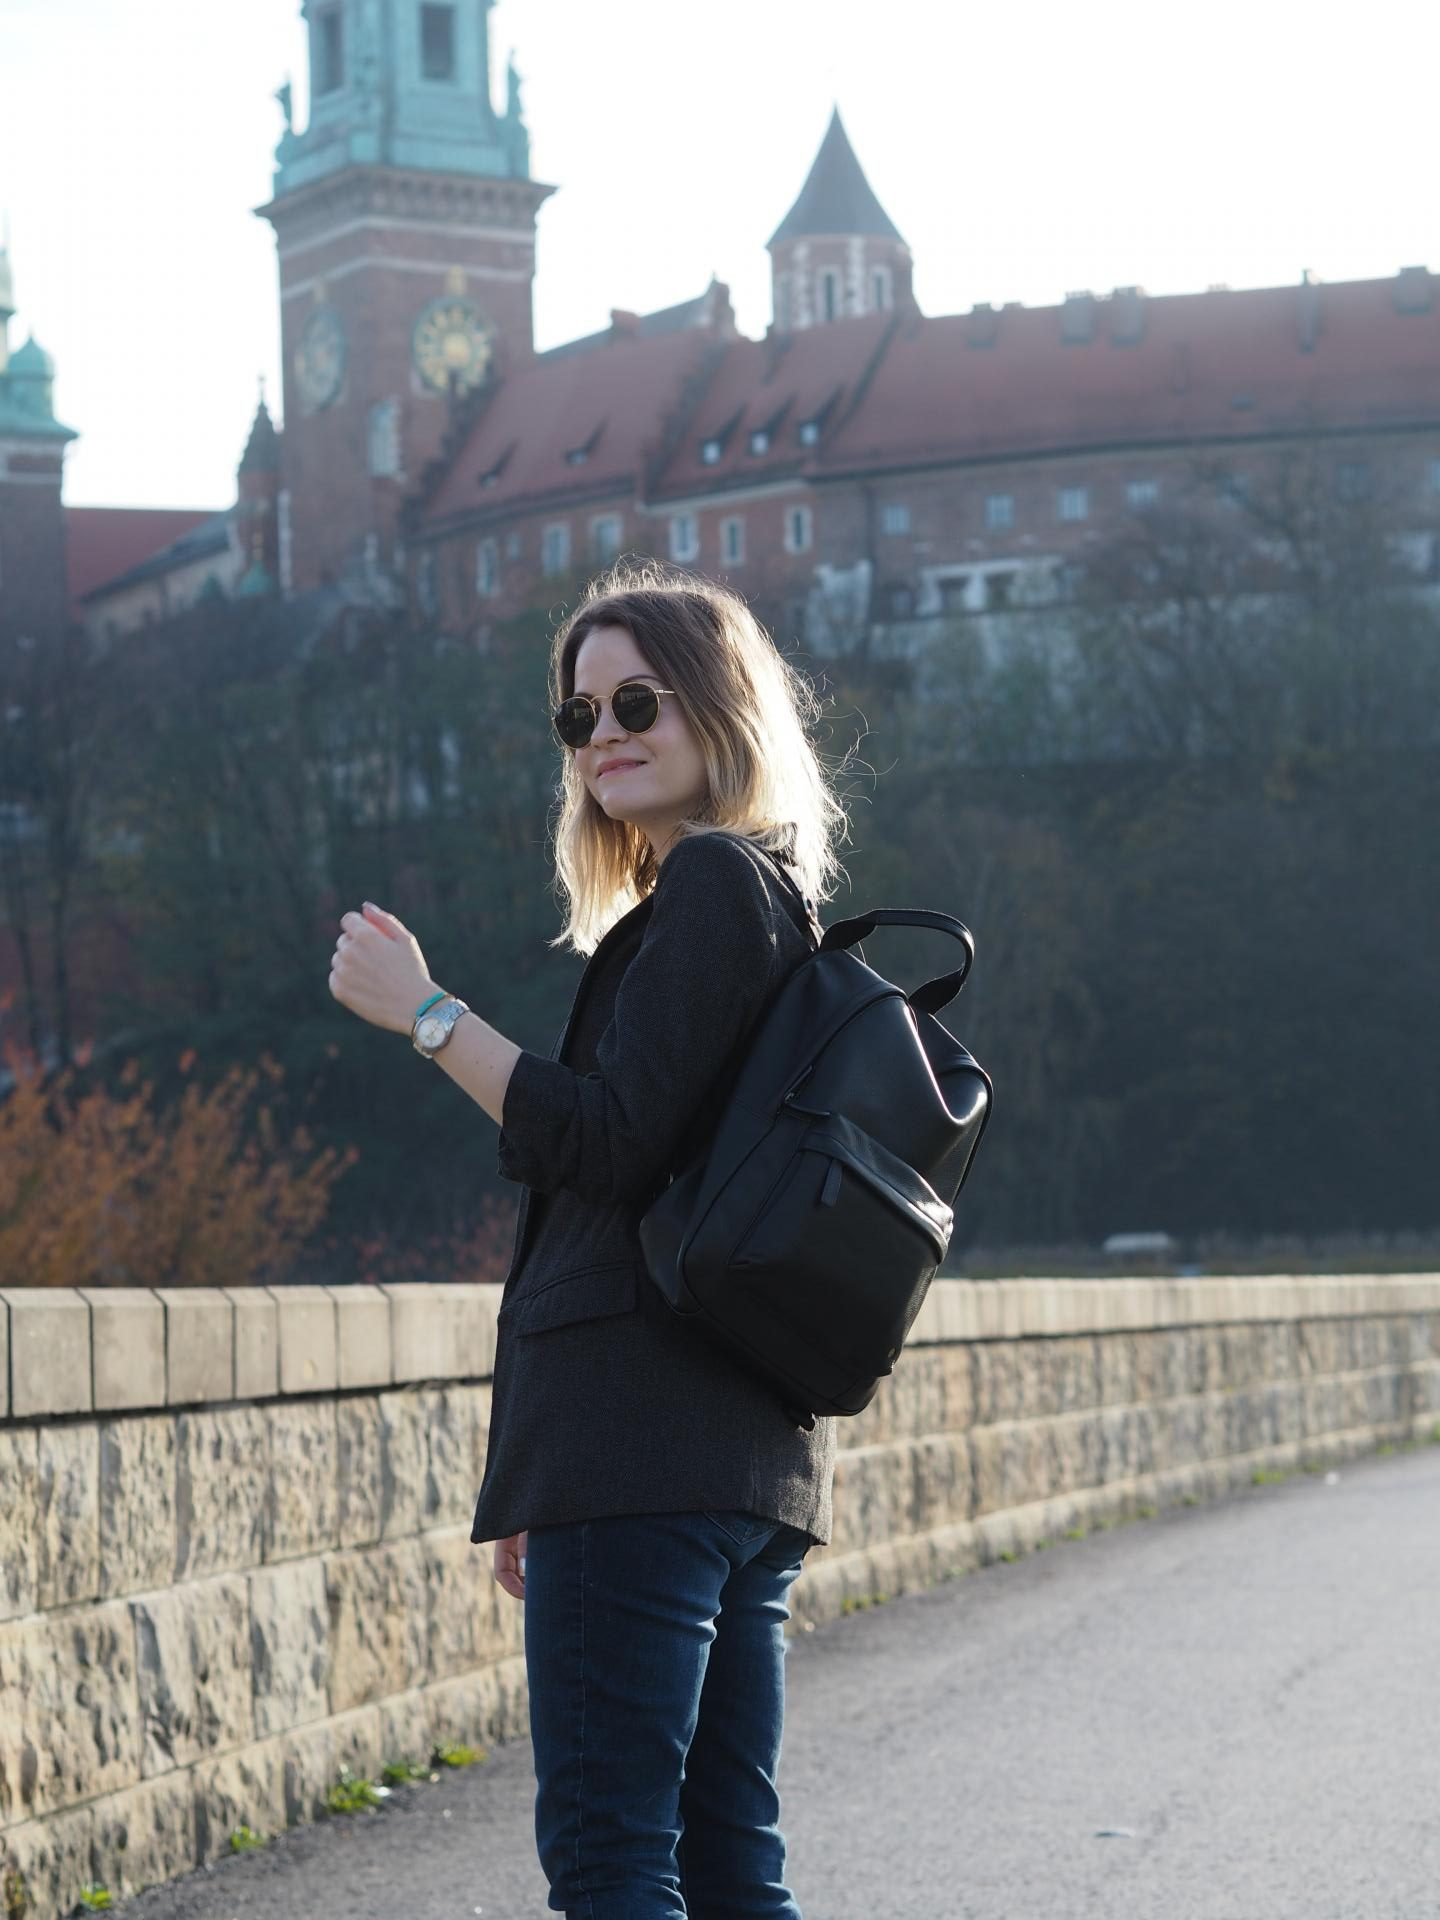 A City Break to Krakow, Poland: Primark Outfit